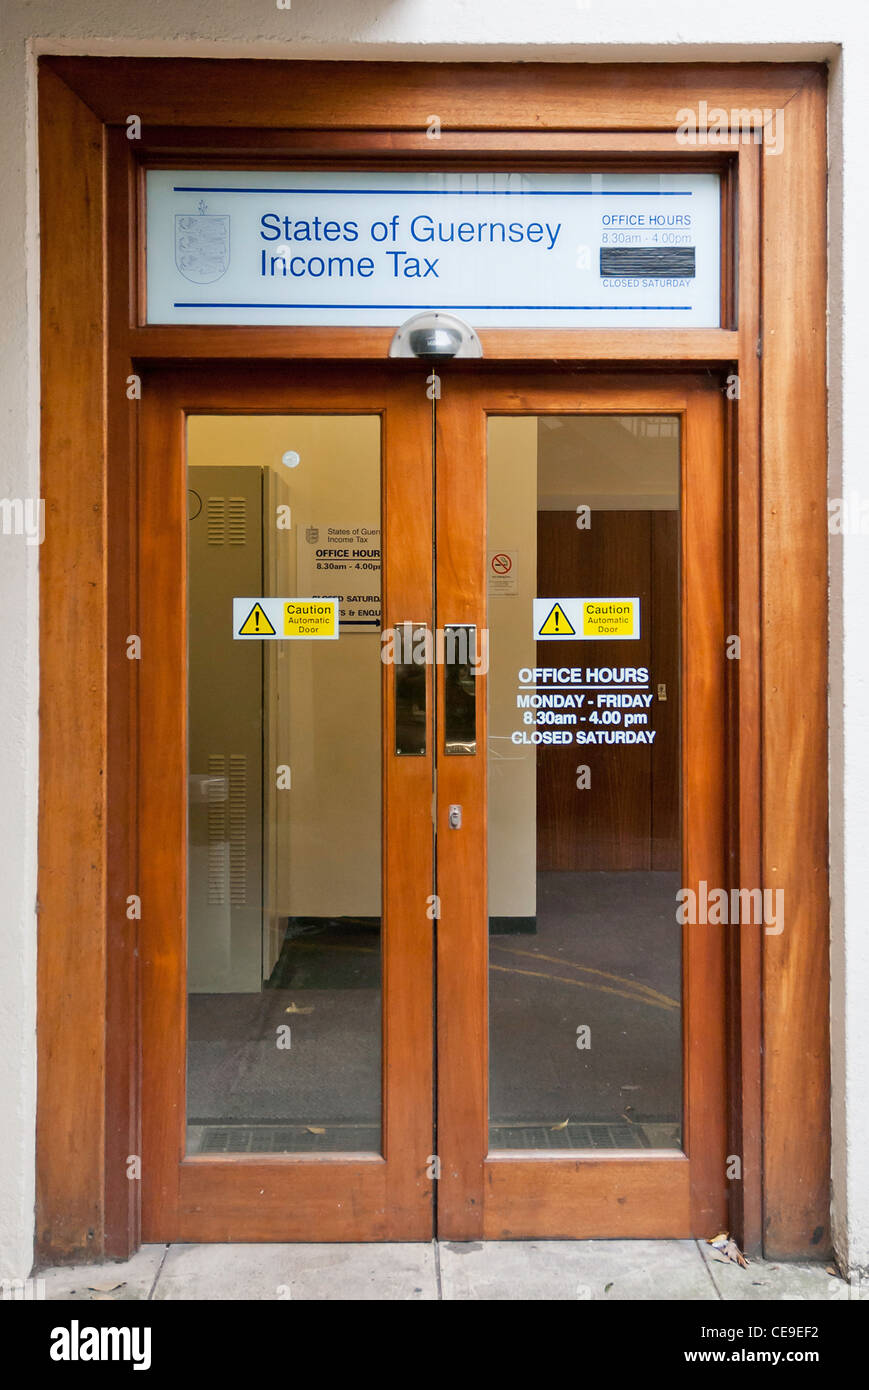 Entrance doorway for the States of Guernsey Income Tax offices. - Stock Image